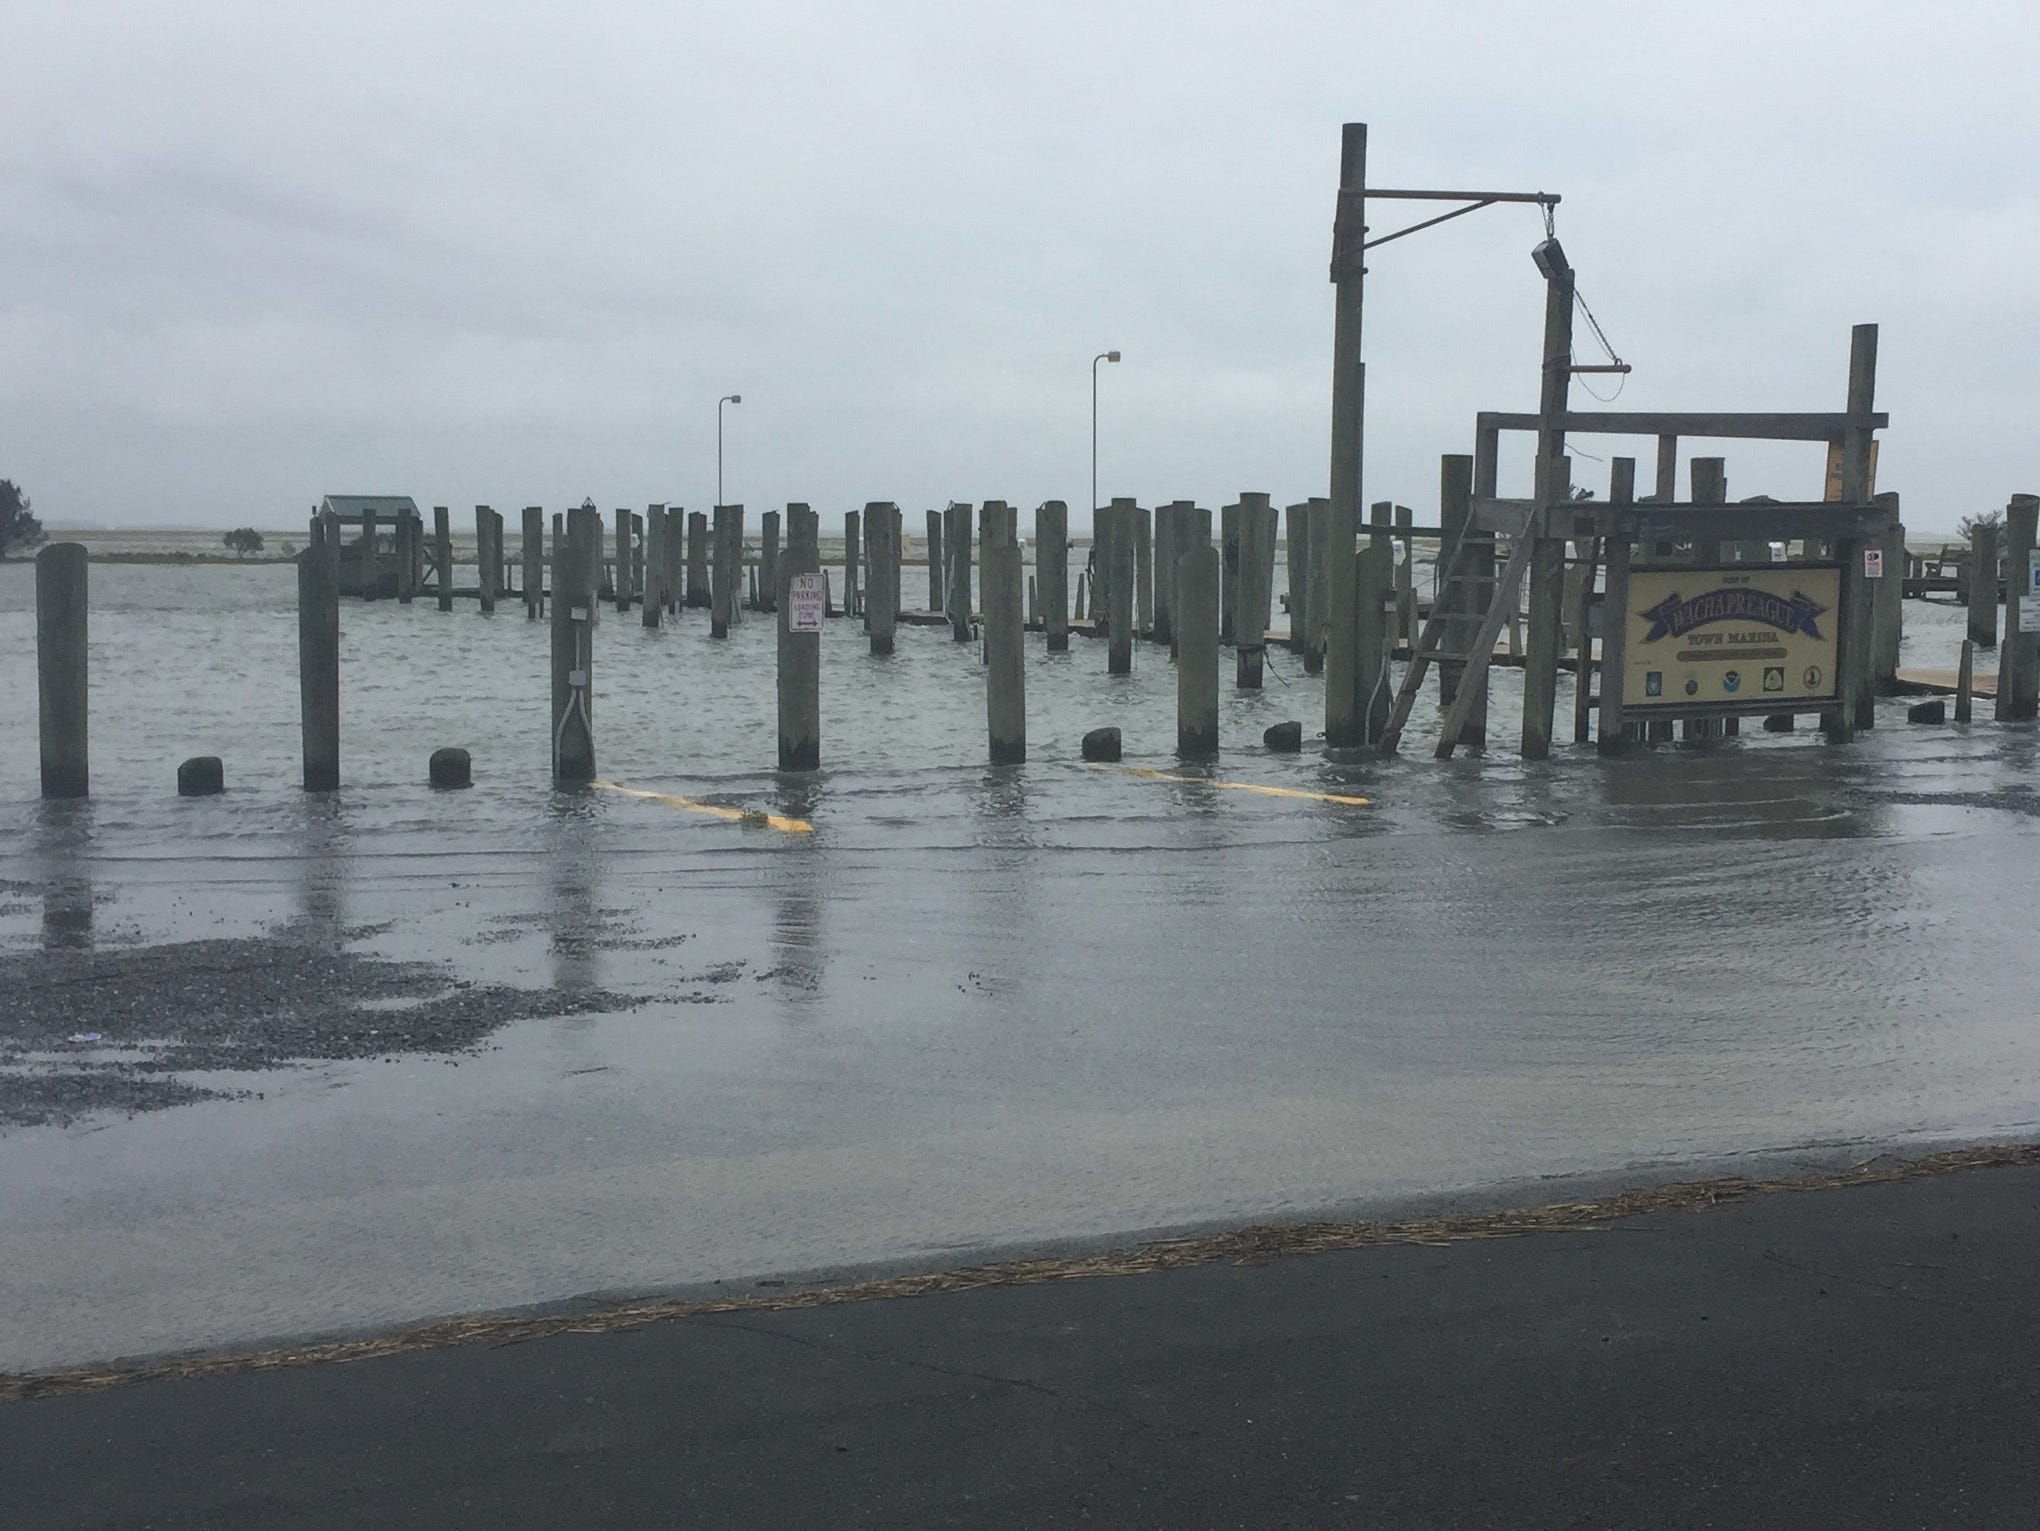 The marina at Wachapreague, Virginia experiences minor coastal flooding during high tide Friday, Sept. 14, 2018 as result of Hurricane Florence.